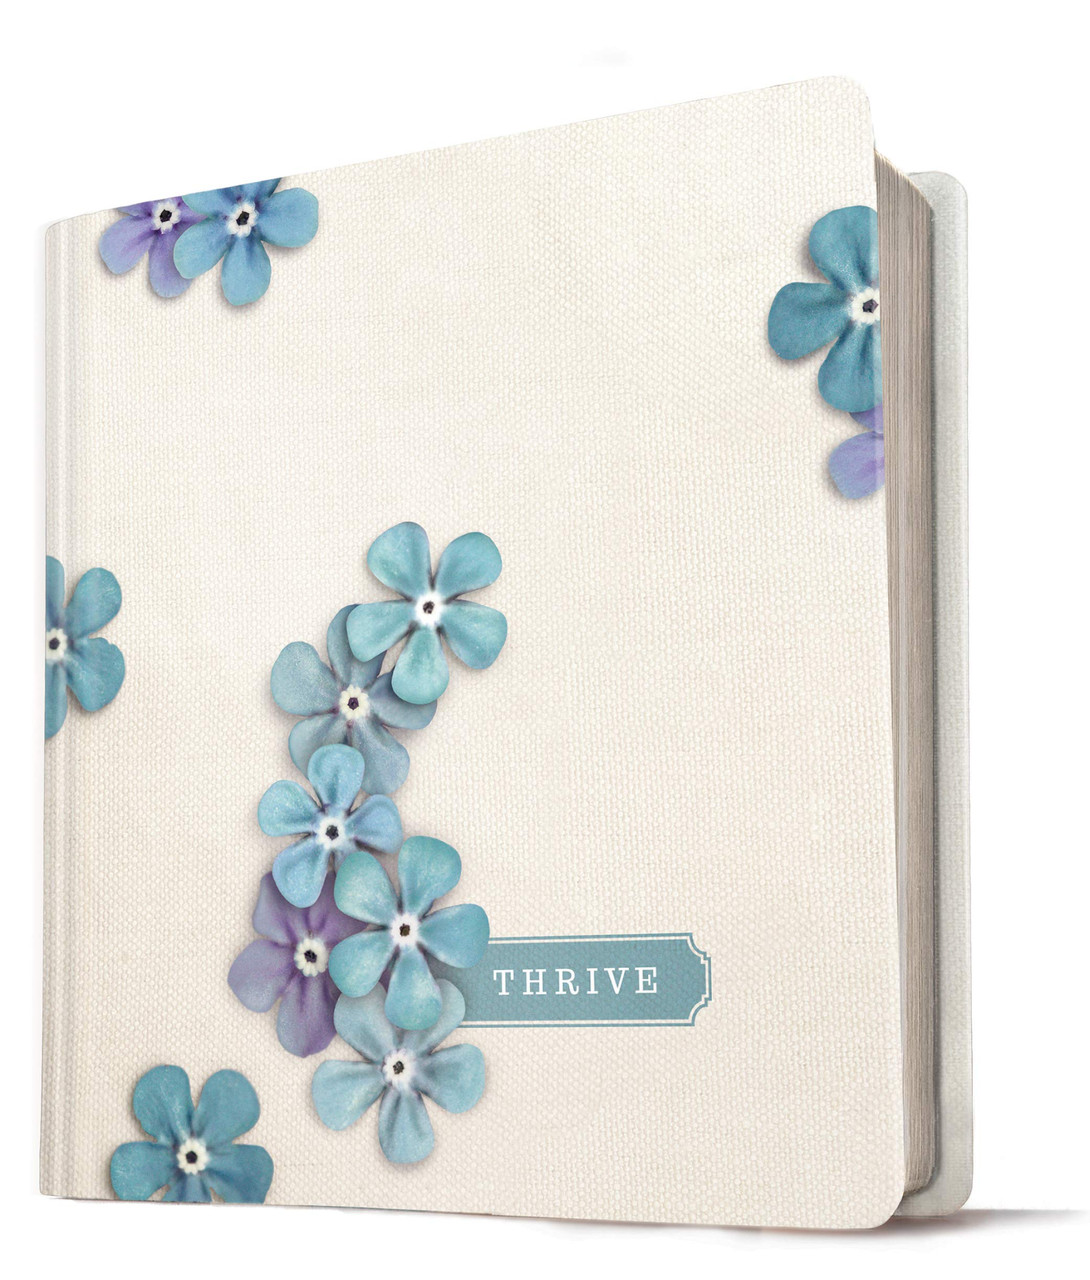 NLT Thrive Creative Journaling Devotional Bible (Hardcover, Blue Flowers)